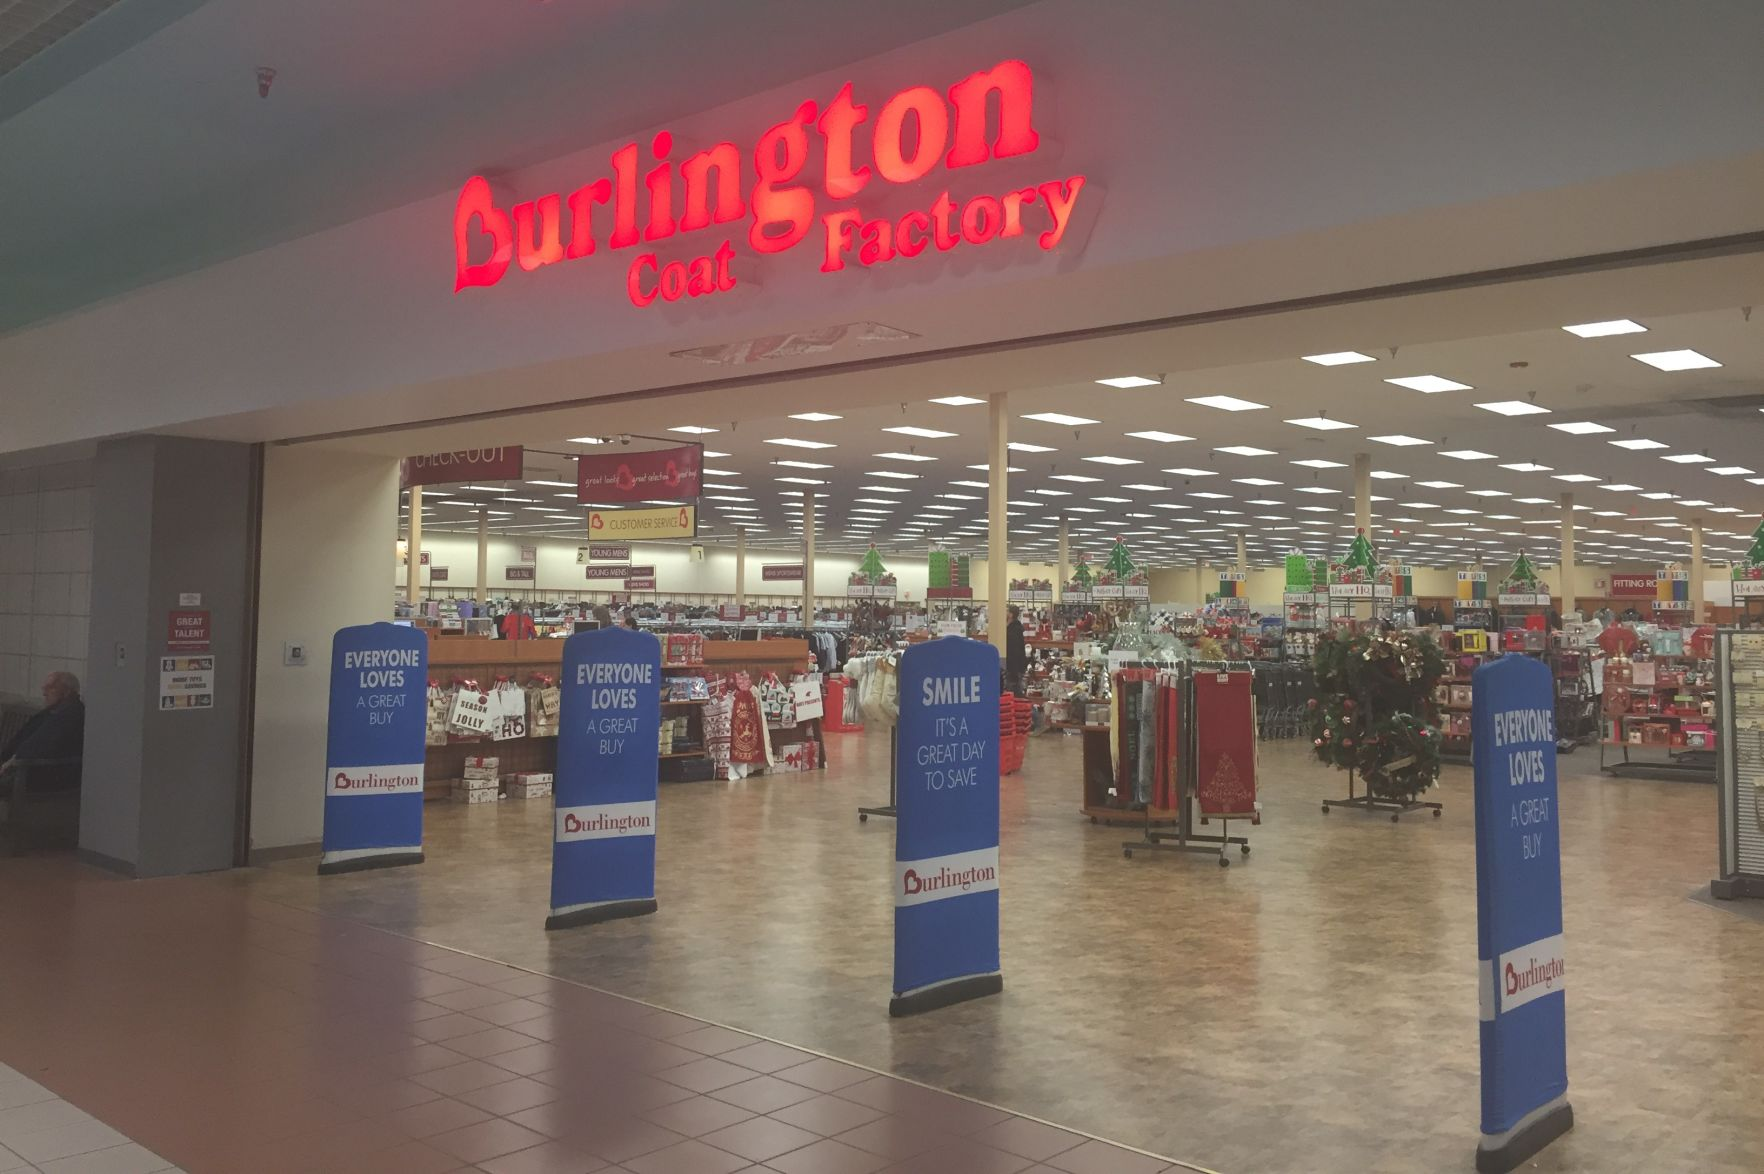 burlington coat factory high chairs bride and groom chair signs to close at uniontown mall local news closing